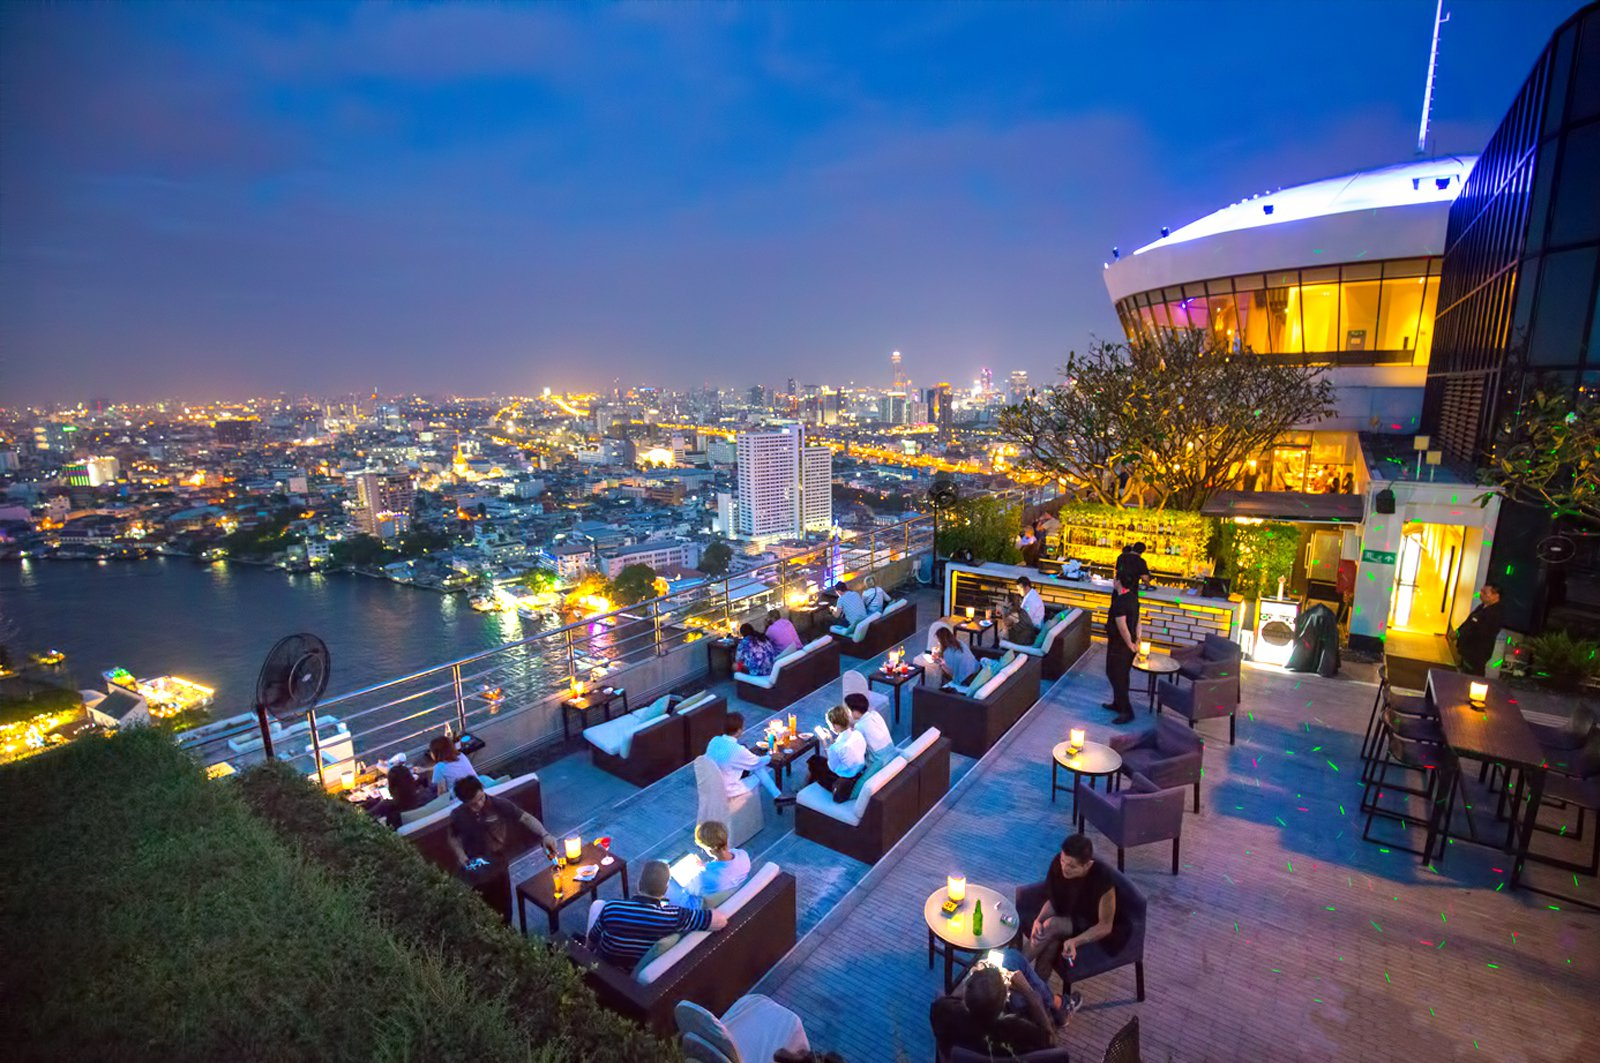 Rivercity Rooftop Restaurant and Bar